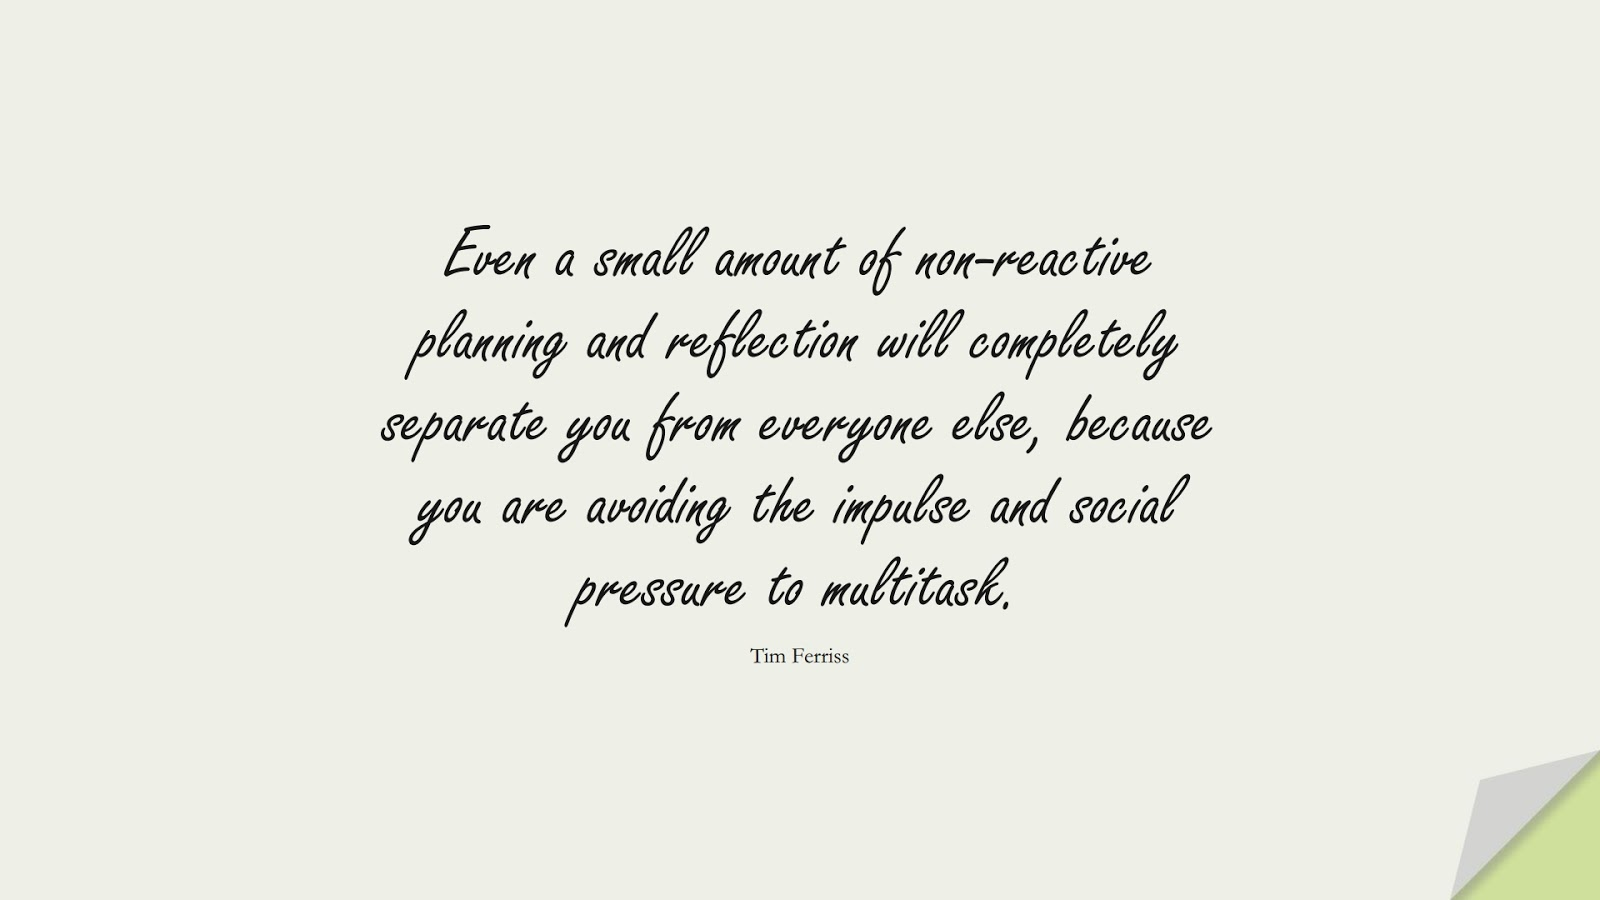 Even a small amount of non-reactive planning and reflection will completely separate you from everyone else, because you are avoiding the impulse and social pressure to multitask. (Tim Ferriss);  #TimFerrissQuotes